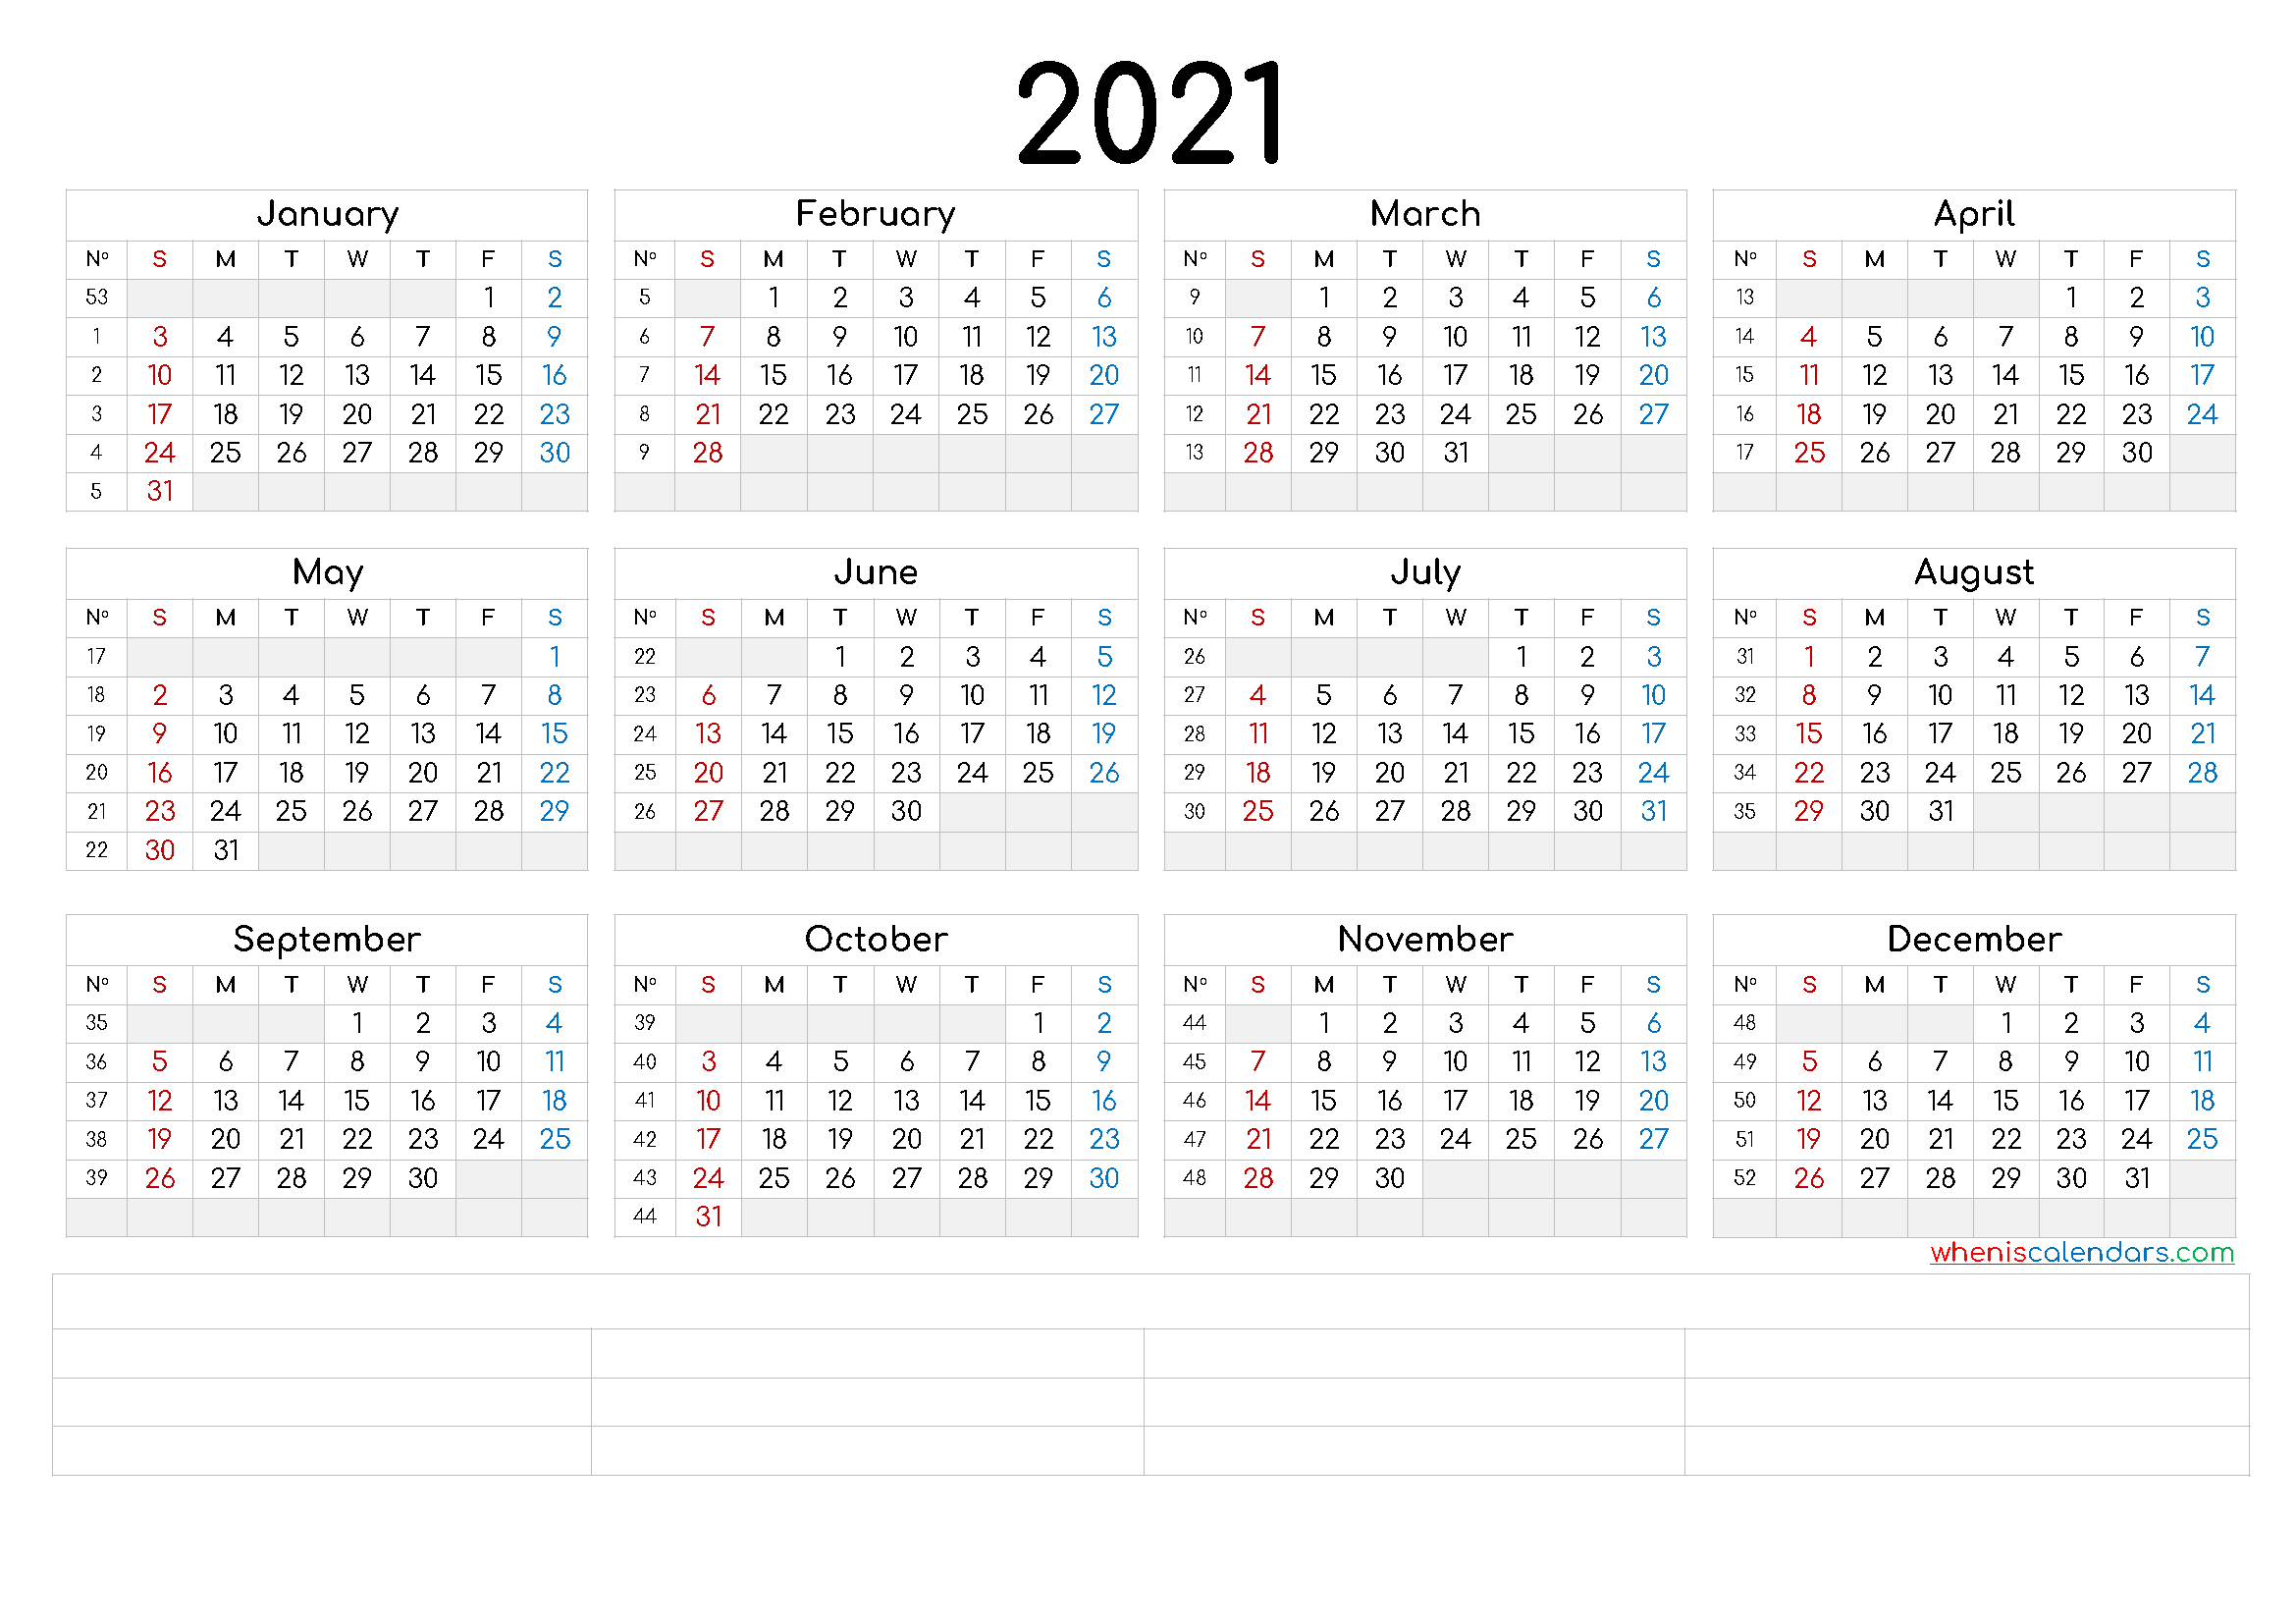 Free Printable 2021 Calendaryear – Calendraex with regard to Free Print 2021 Calendars Without Downloading